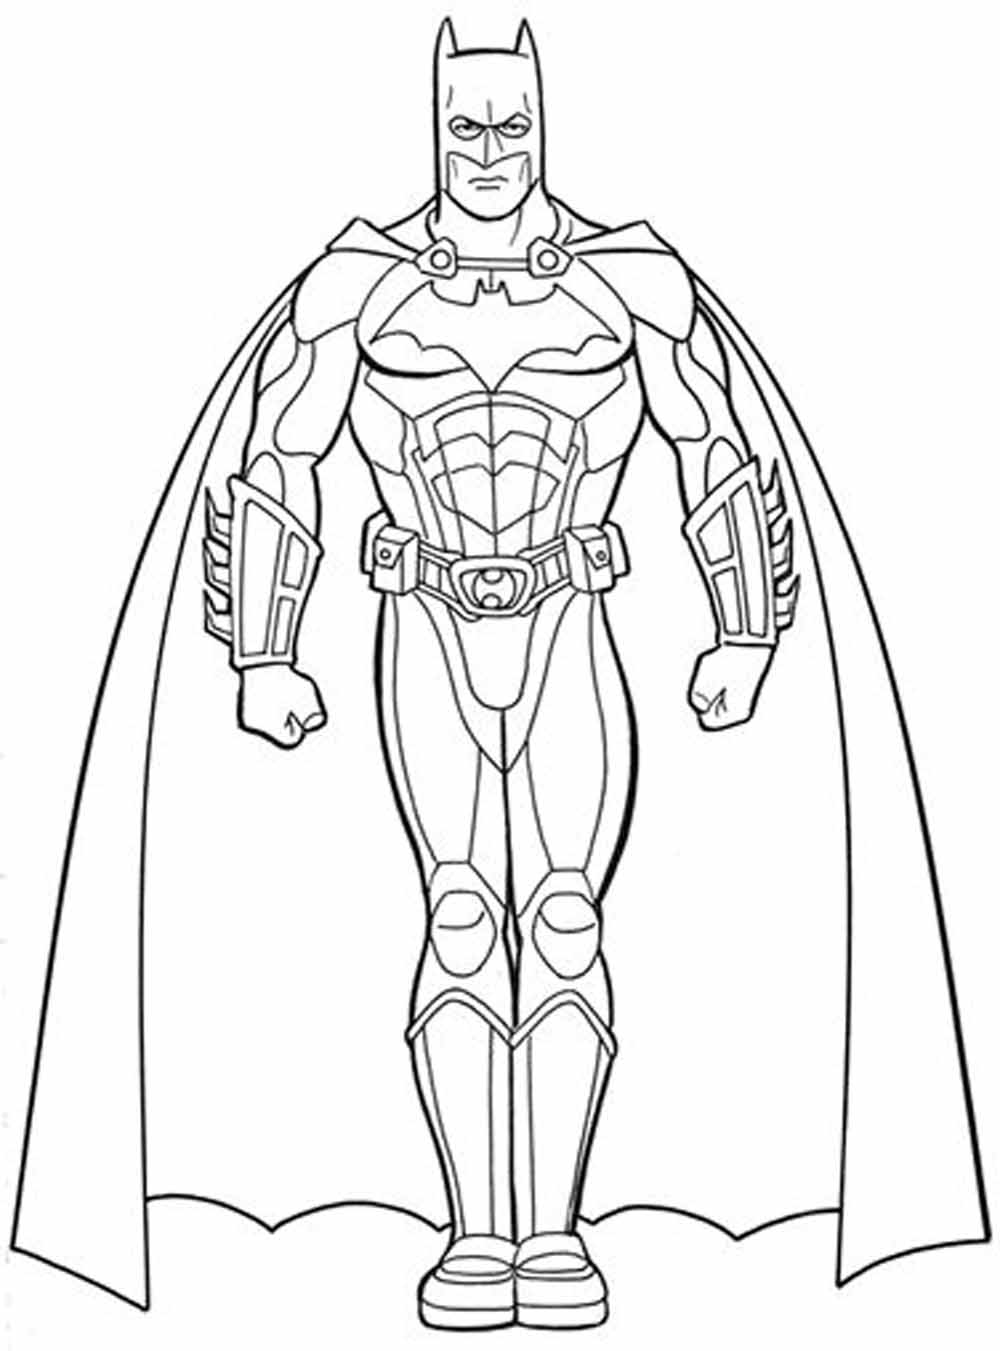 batmancoloring pages batman coloring pages batmancoloring pages 1 1